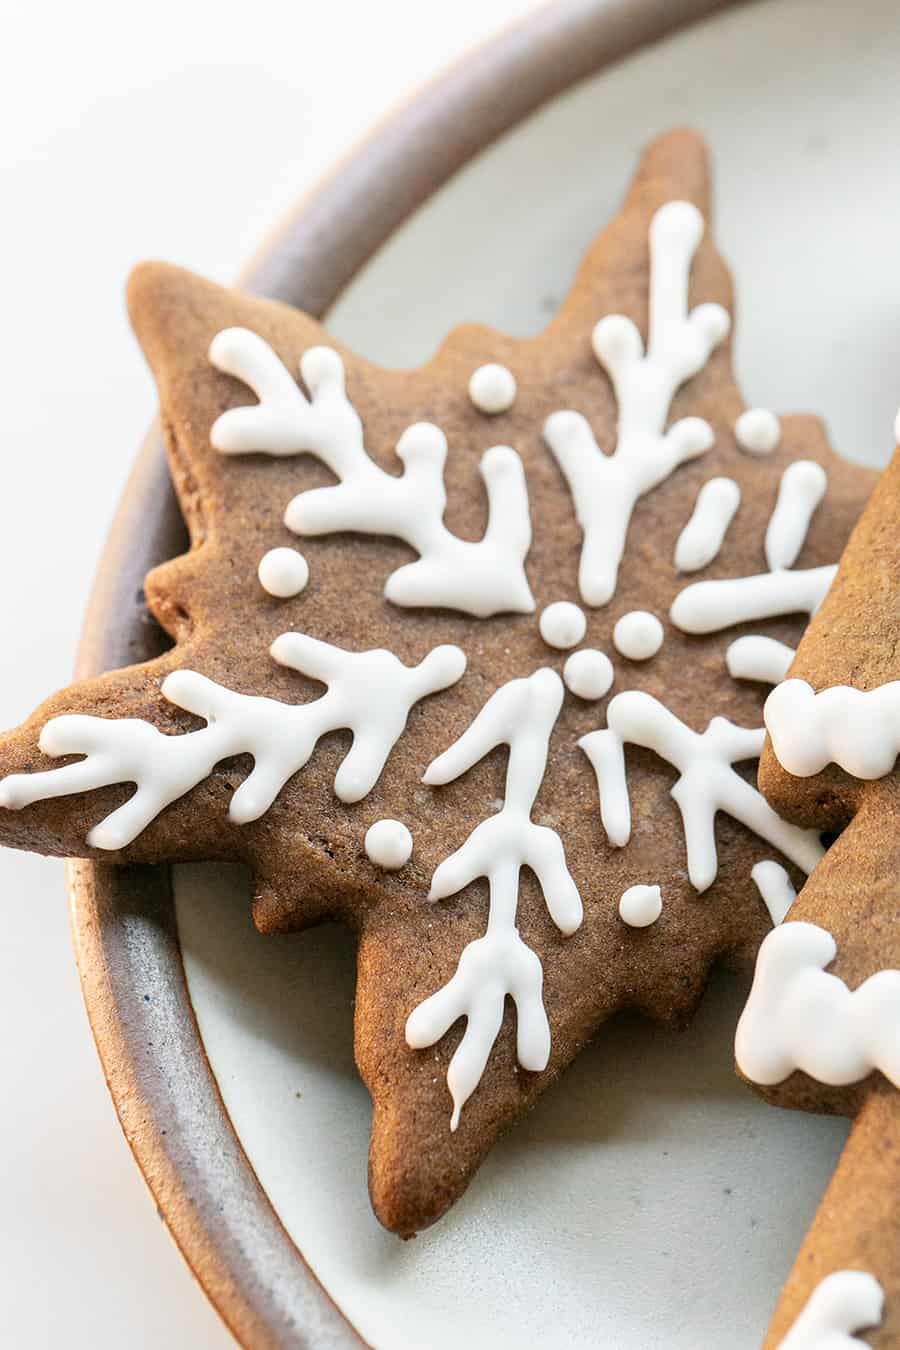 Gingerbread snowflake cookie decorated with royal icing